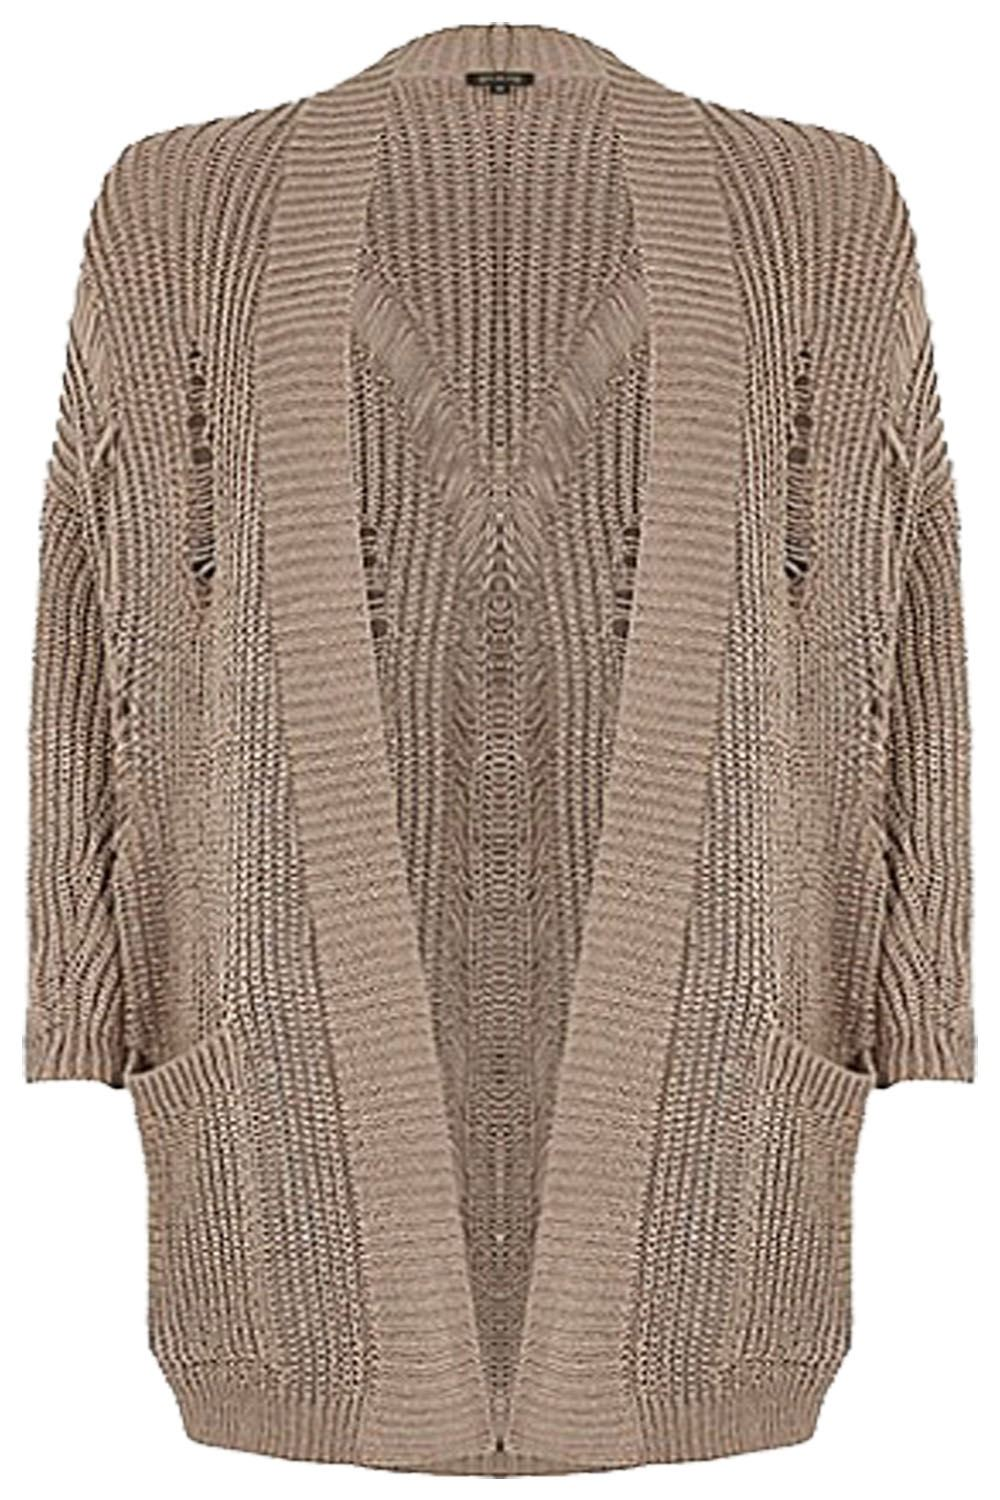 New Ladies Women Ripped Knitted Distressed Chunky Long Cardigan ...